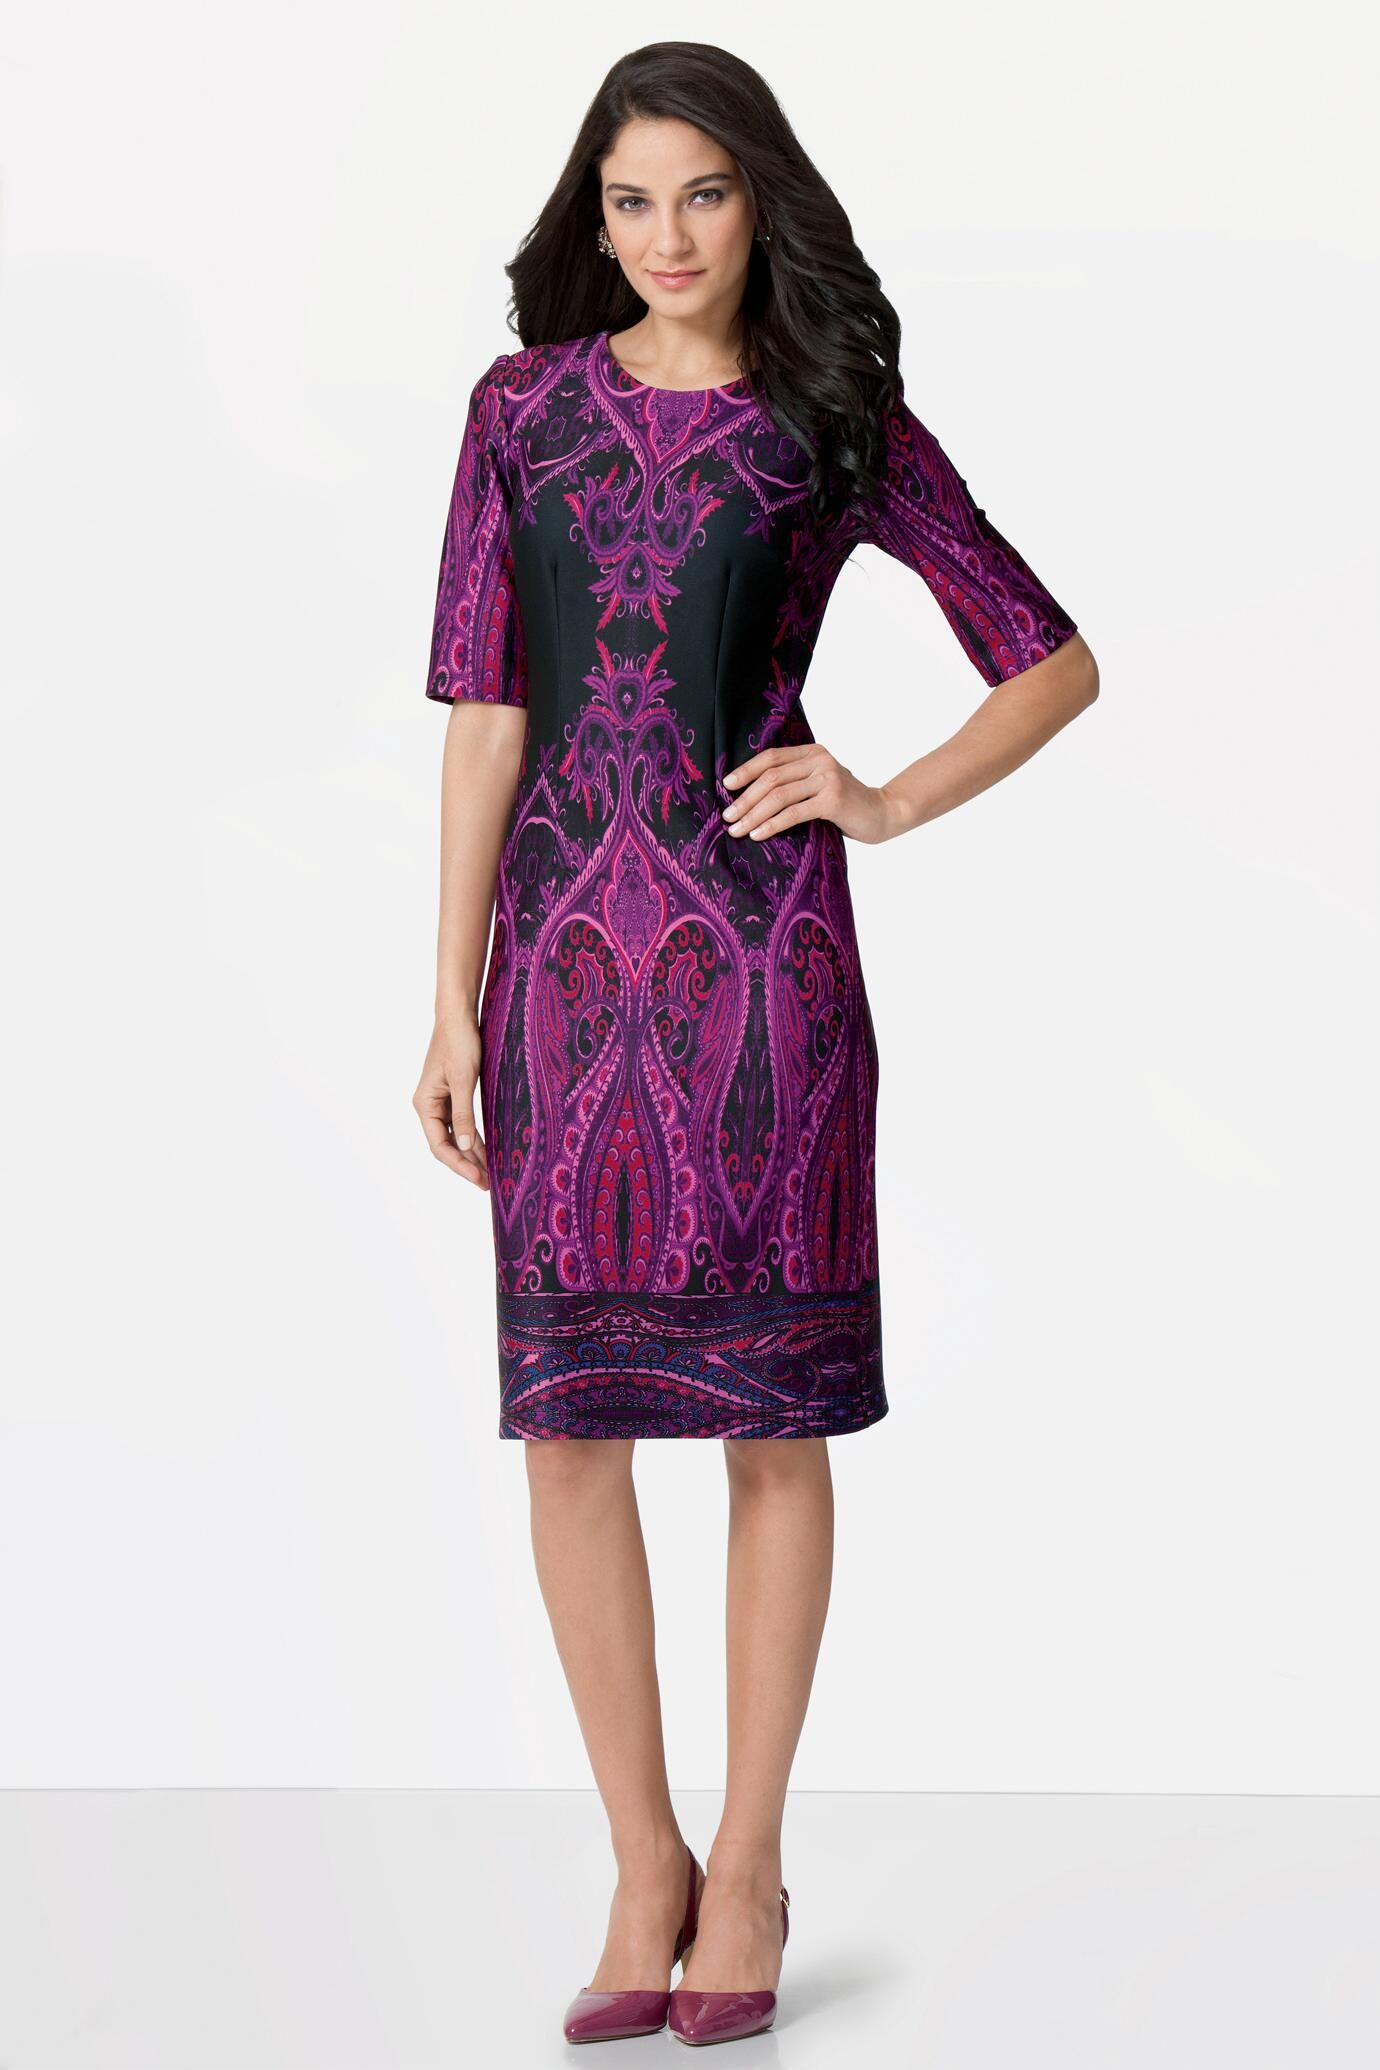 Mirror Print Dress: Unique & Bold Women\'s Clothing from #metrostyle ...